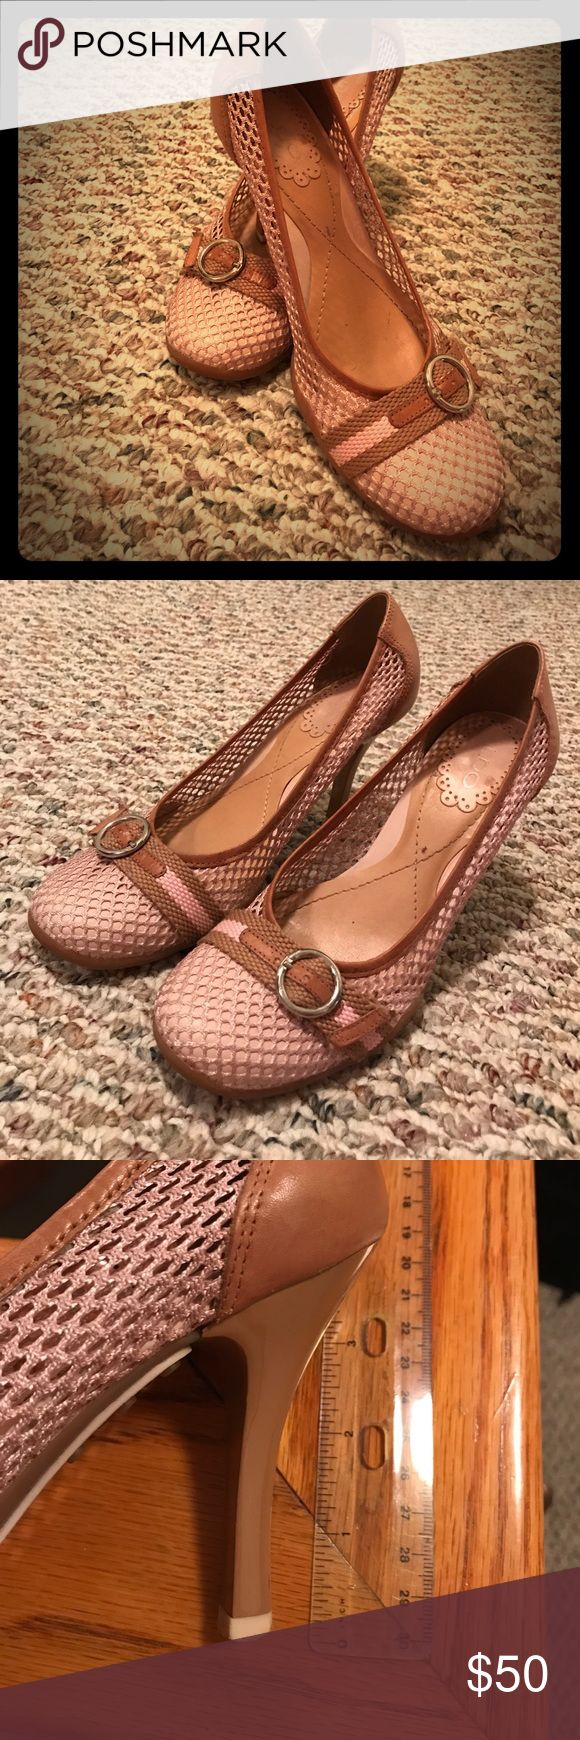 "Aldo heels Pink and camel 3"" inch heeled pump. It's mesh fabric with a buckle; loved but always too small. Aldo Shoes Heels"